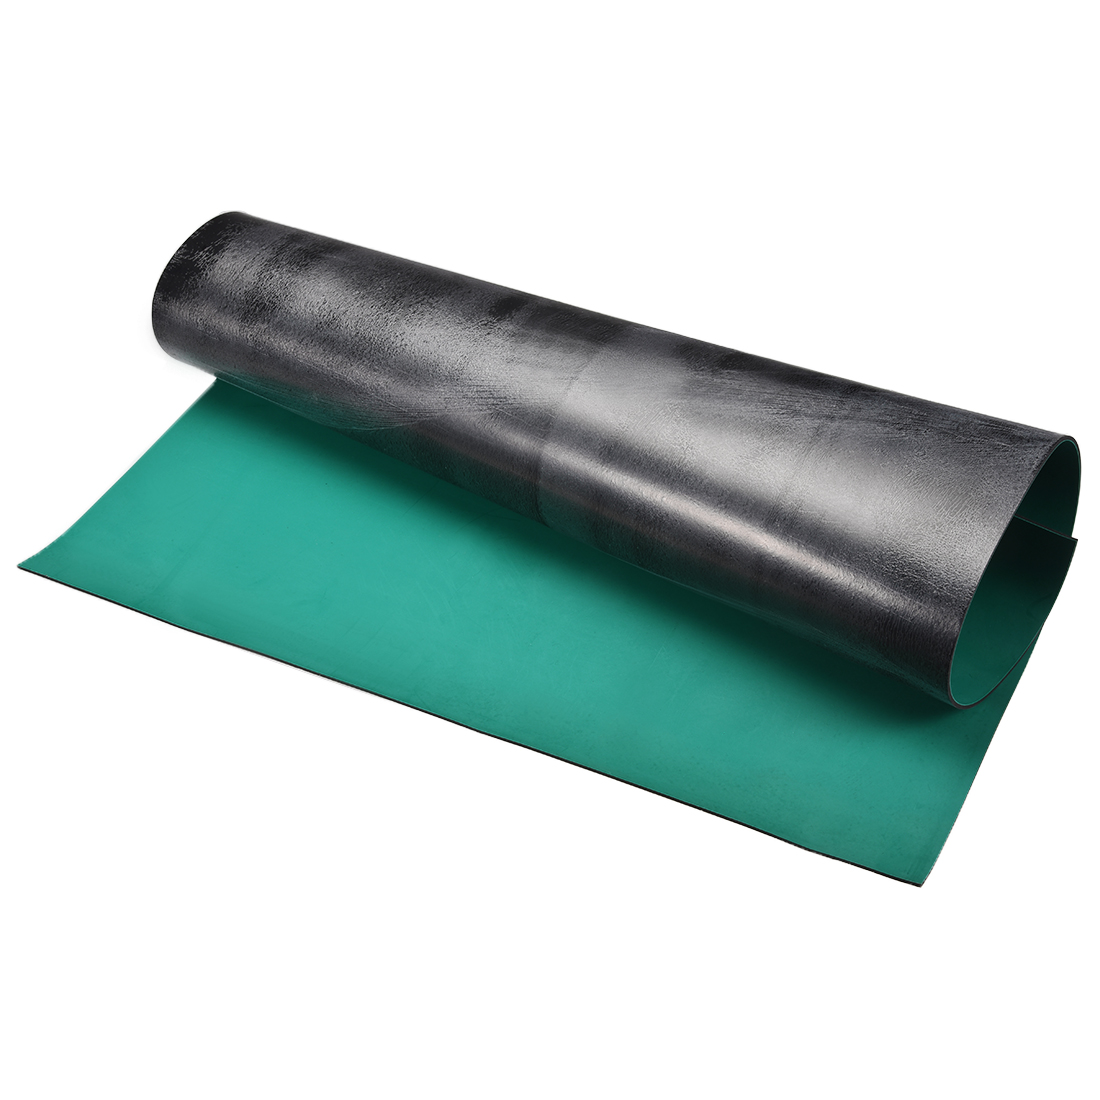 Anti Static ESD Mat High Temperature Rubber Table Mat 1002 x 614mm Green Black